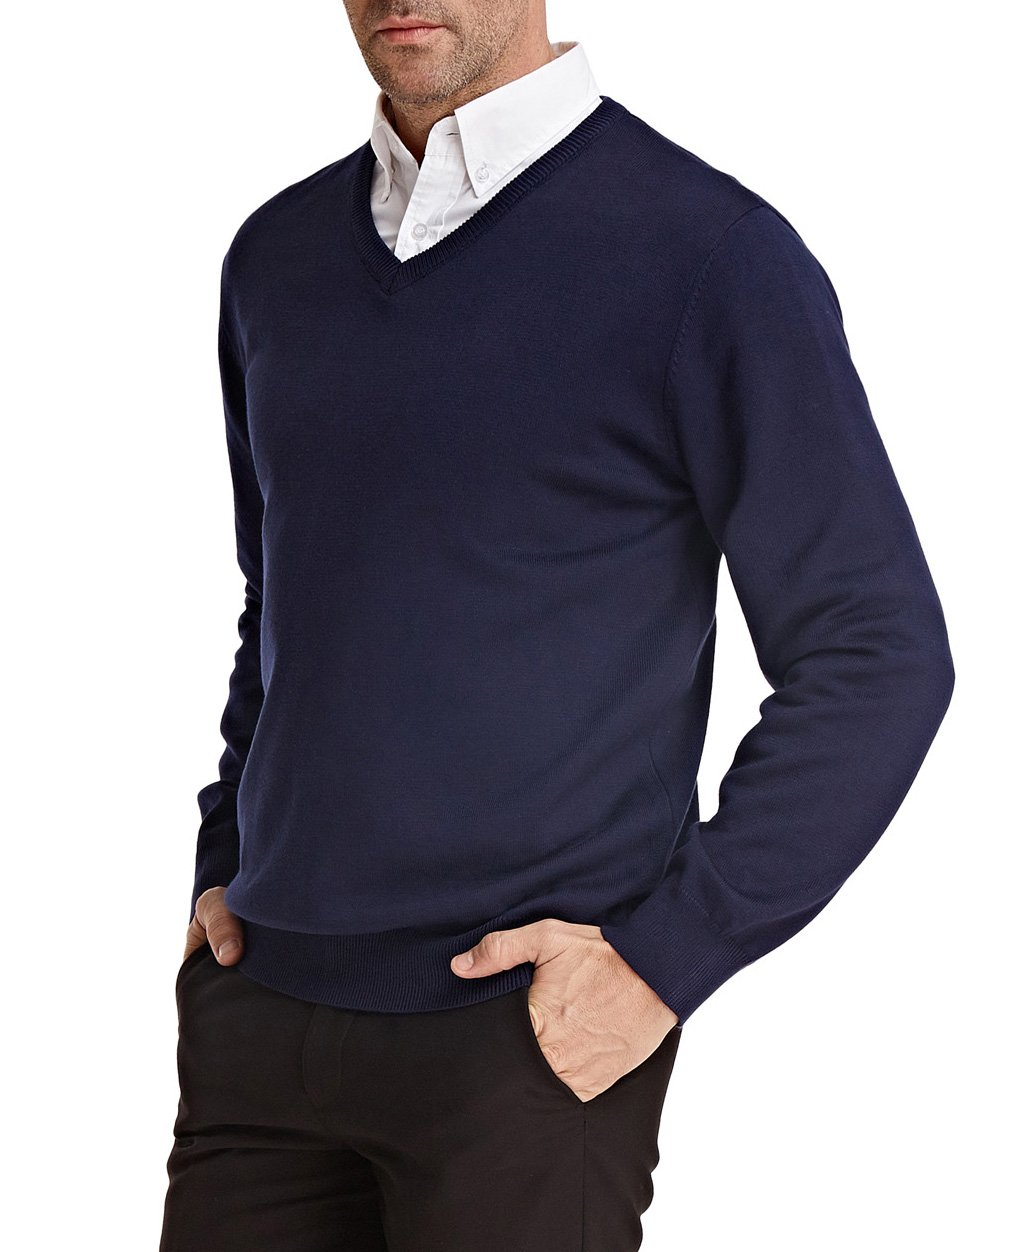 PAUL JONES Men's Thick Comfortable Sweater Slim Fit Pullover Size L Navy Blue by PAUL JONES